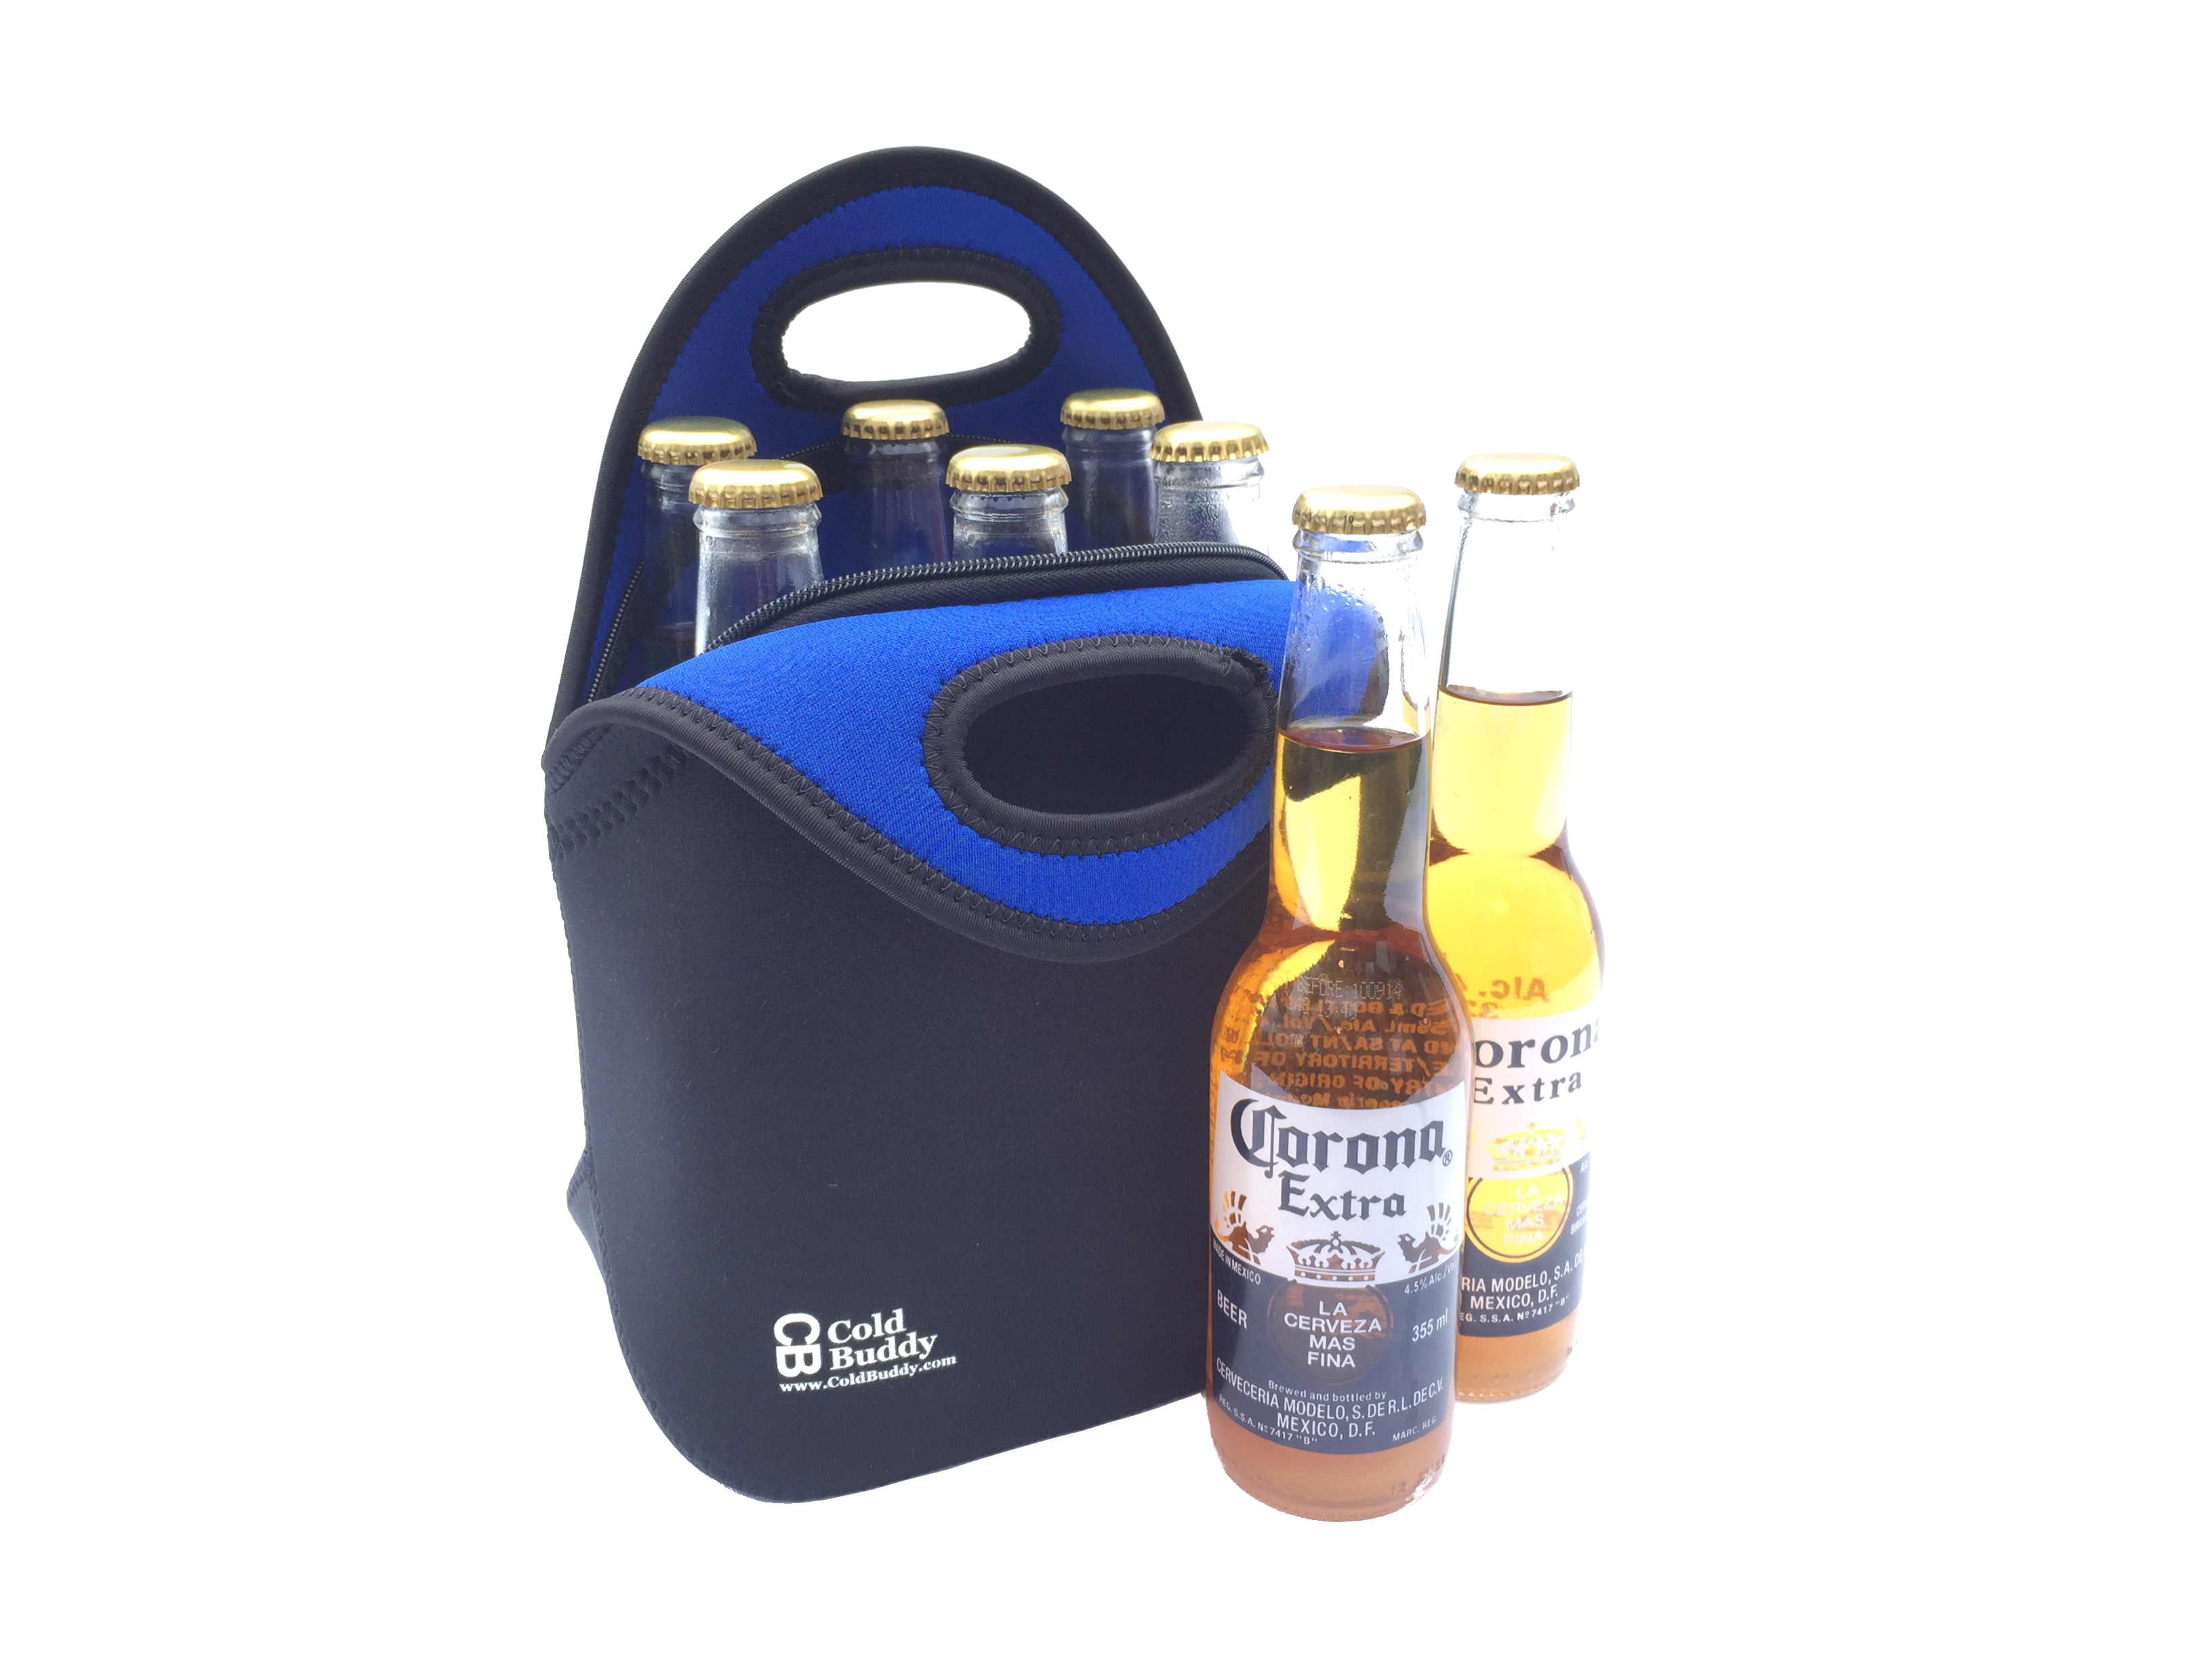 Lunch And Bottle Bag Cold Buddy Neoprene Bags